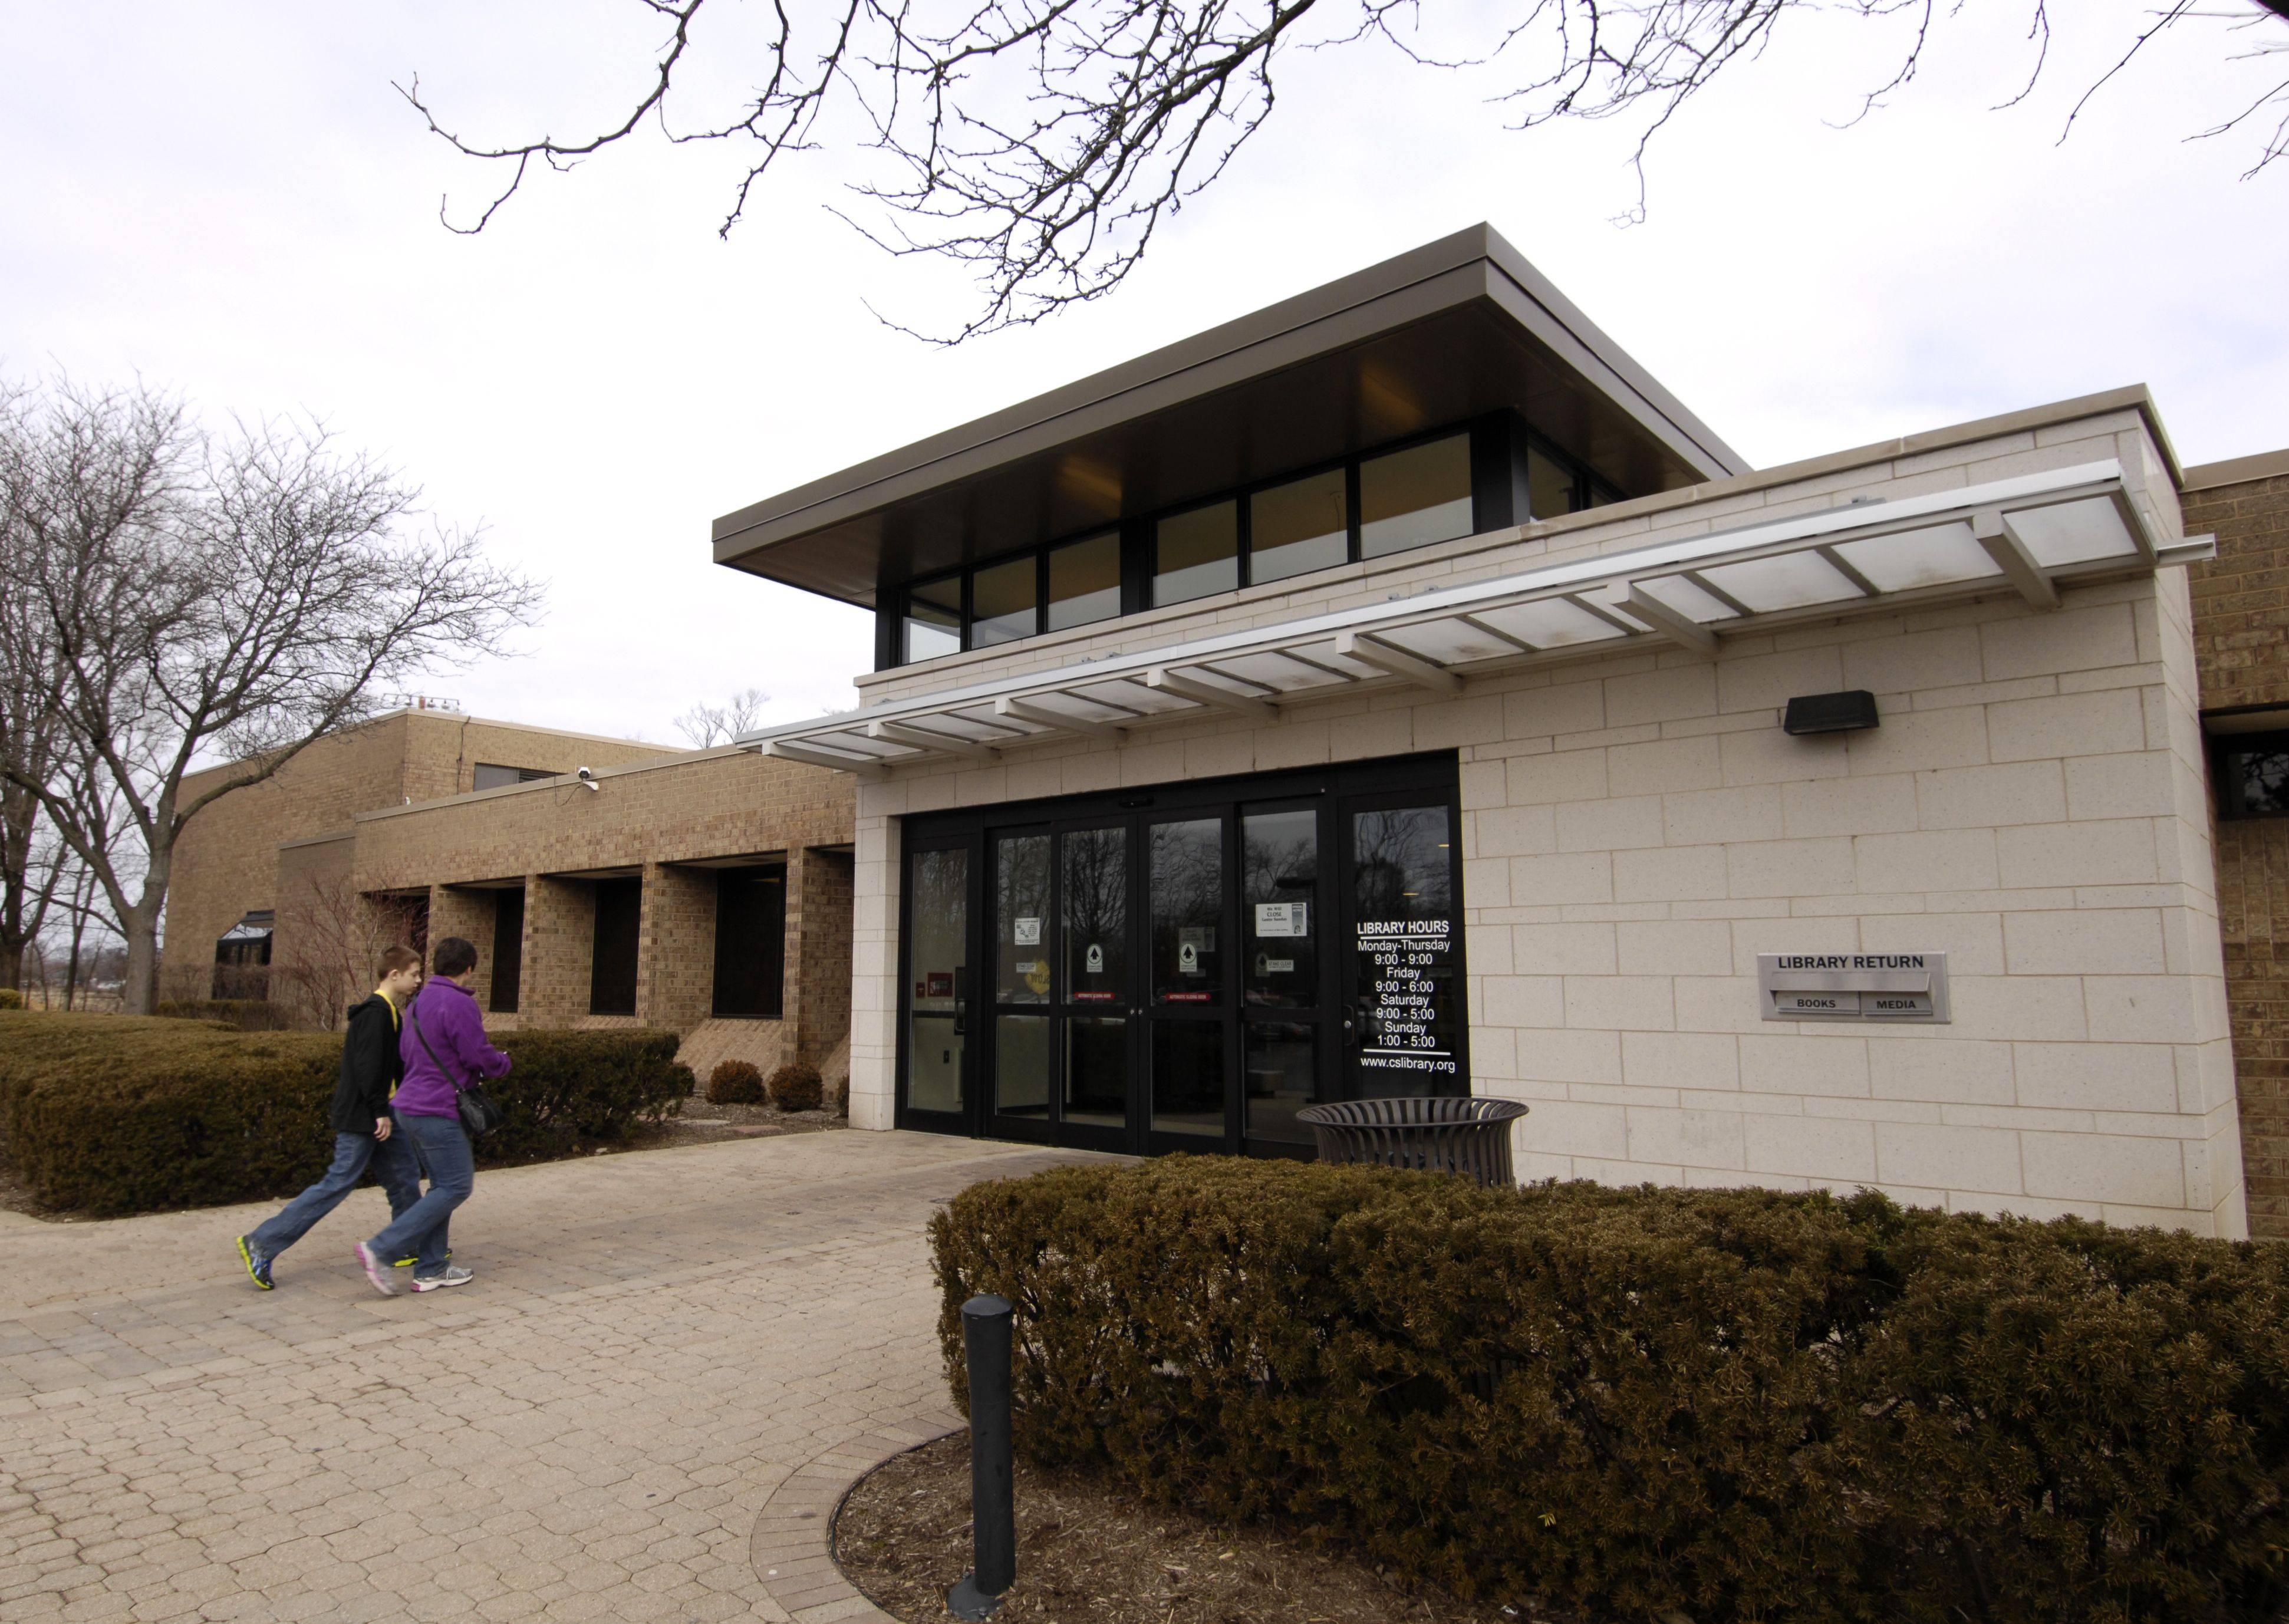 A new majority is coming to the Carol Stream Library board after the Support the Library slate swept all five available positions in Tuesday's election.